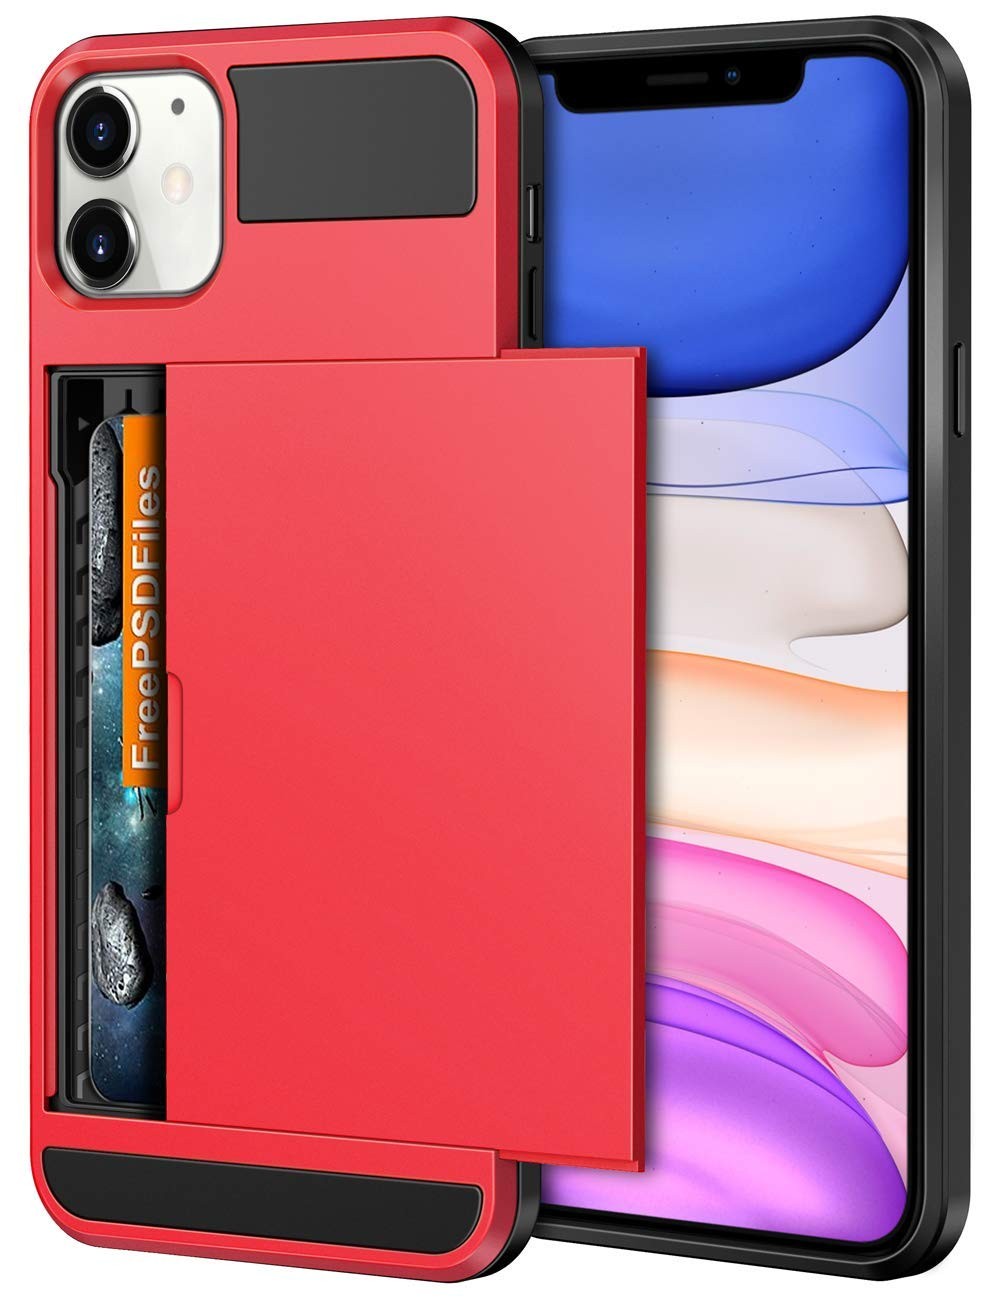 Vofolen Case for iPhone 11 Case Wallet Credit Card Holder ID Slot Sliding Door Hidden Pocket Anti-Scratch Dual Layer Hybrid Bumper Armor Protective Hard Shell Back Cover for iPhone 11 6.1 inch Red